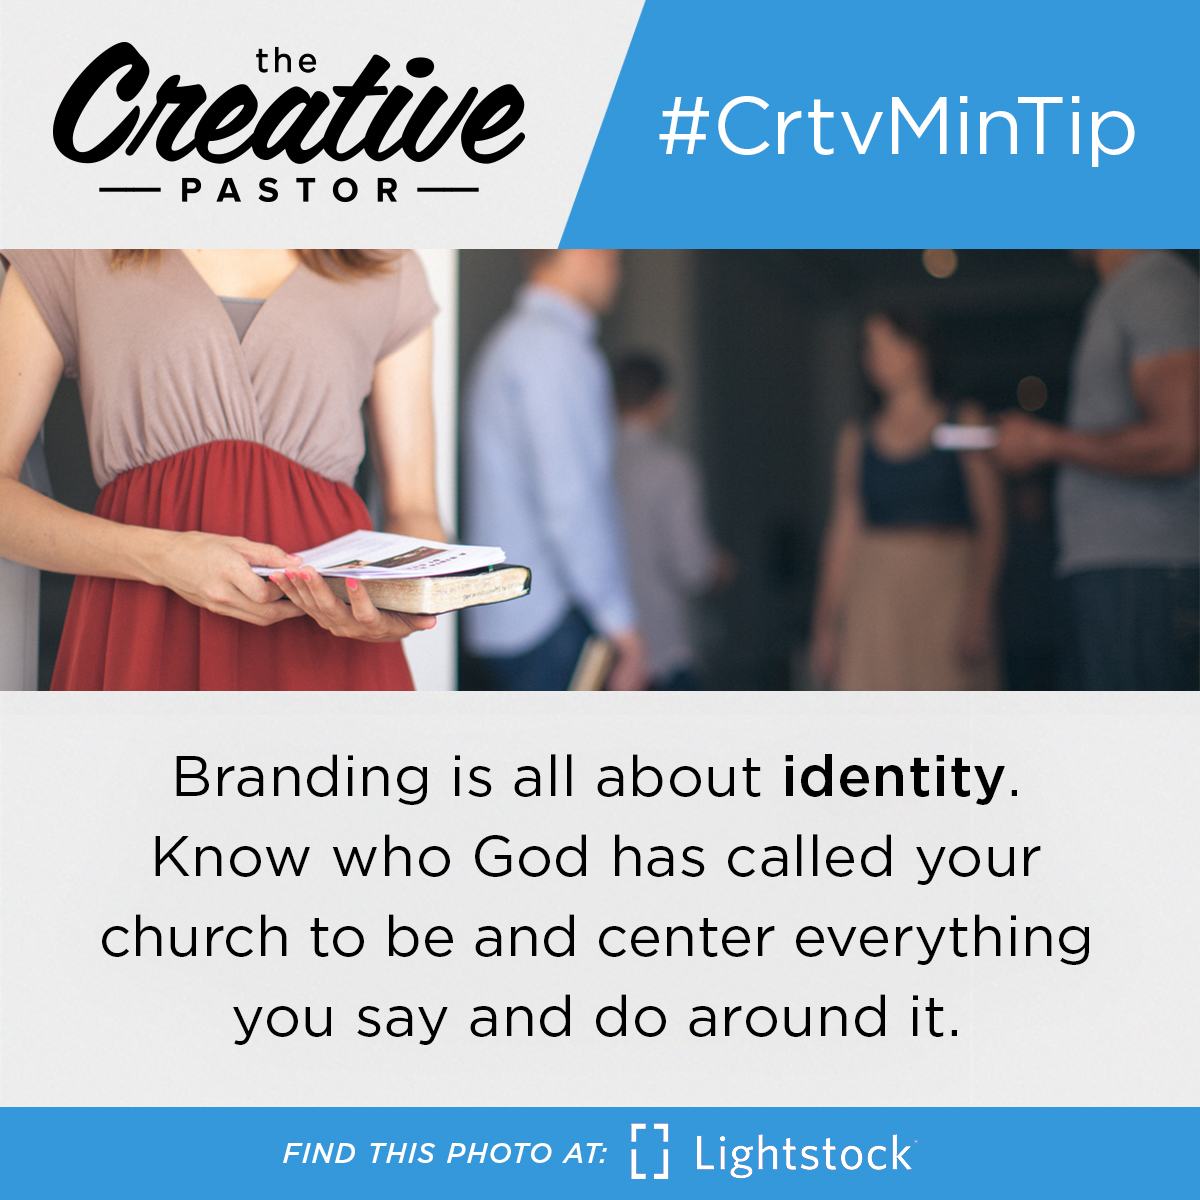 Branding is all about identity. Know who God has called your church to be and center everything you say and do around it.